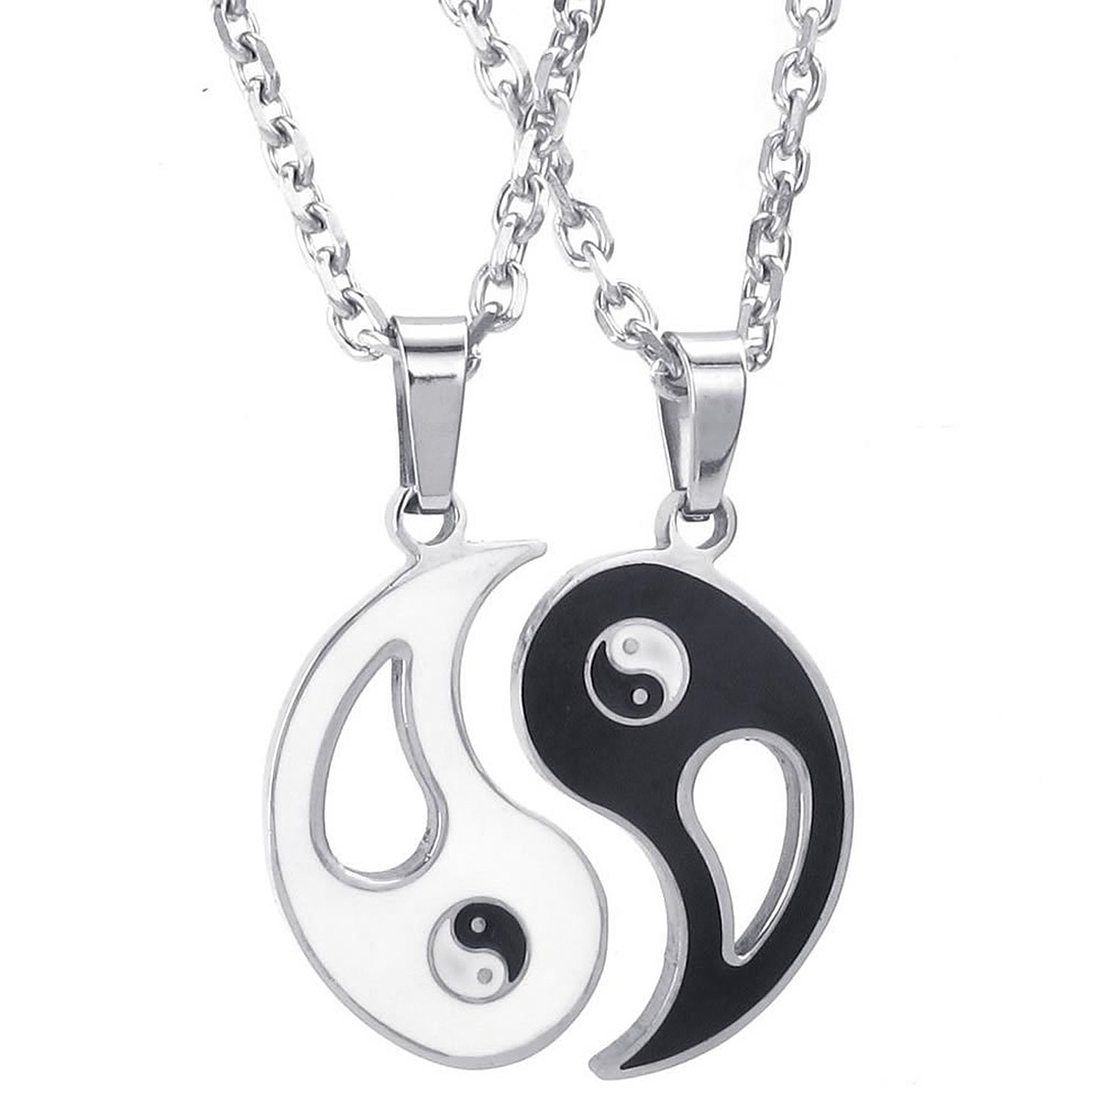 font b Jewelry b font 2 Friendship chains Tai Chi Yin and Yang Stainless steel